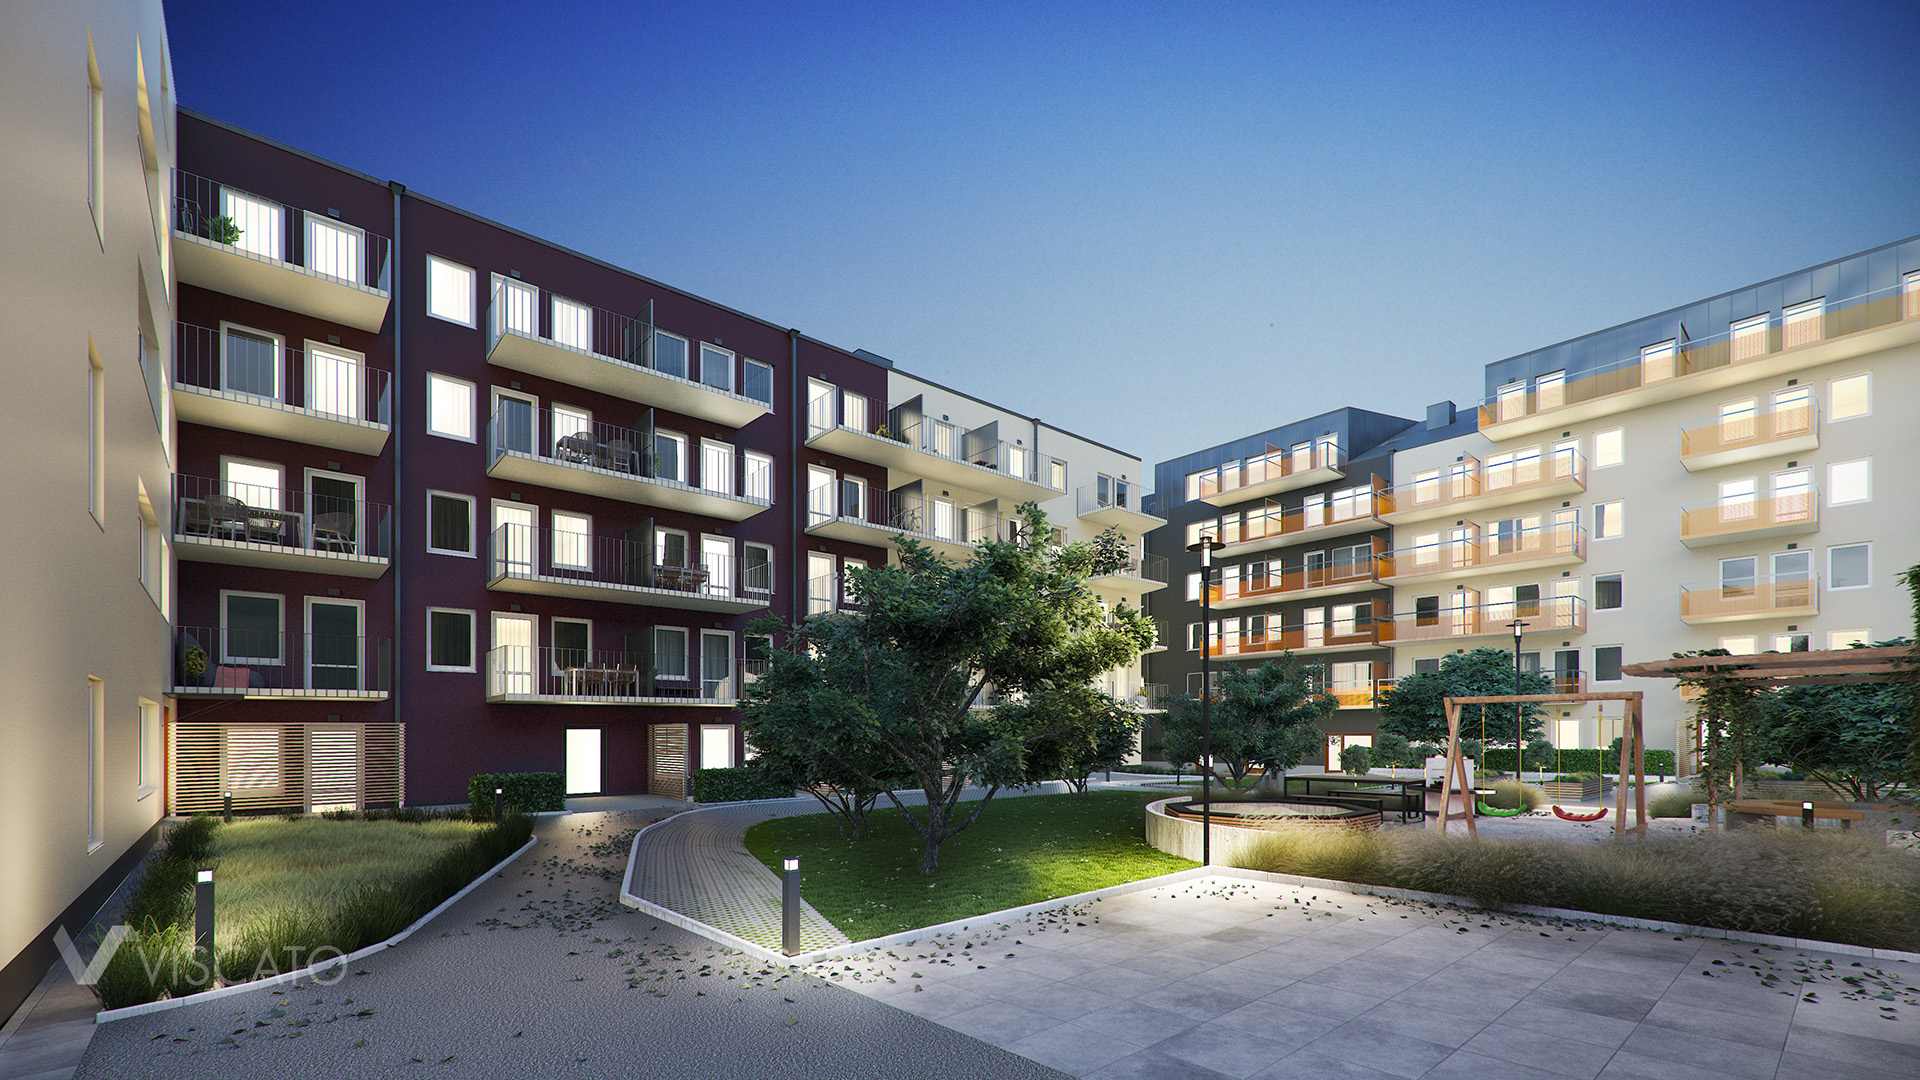 architectural visualisation of a multi family building- evening view